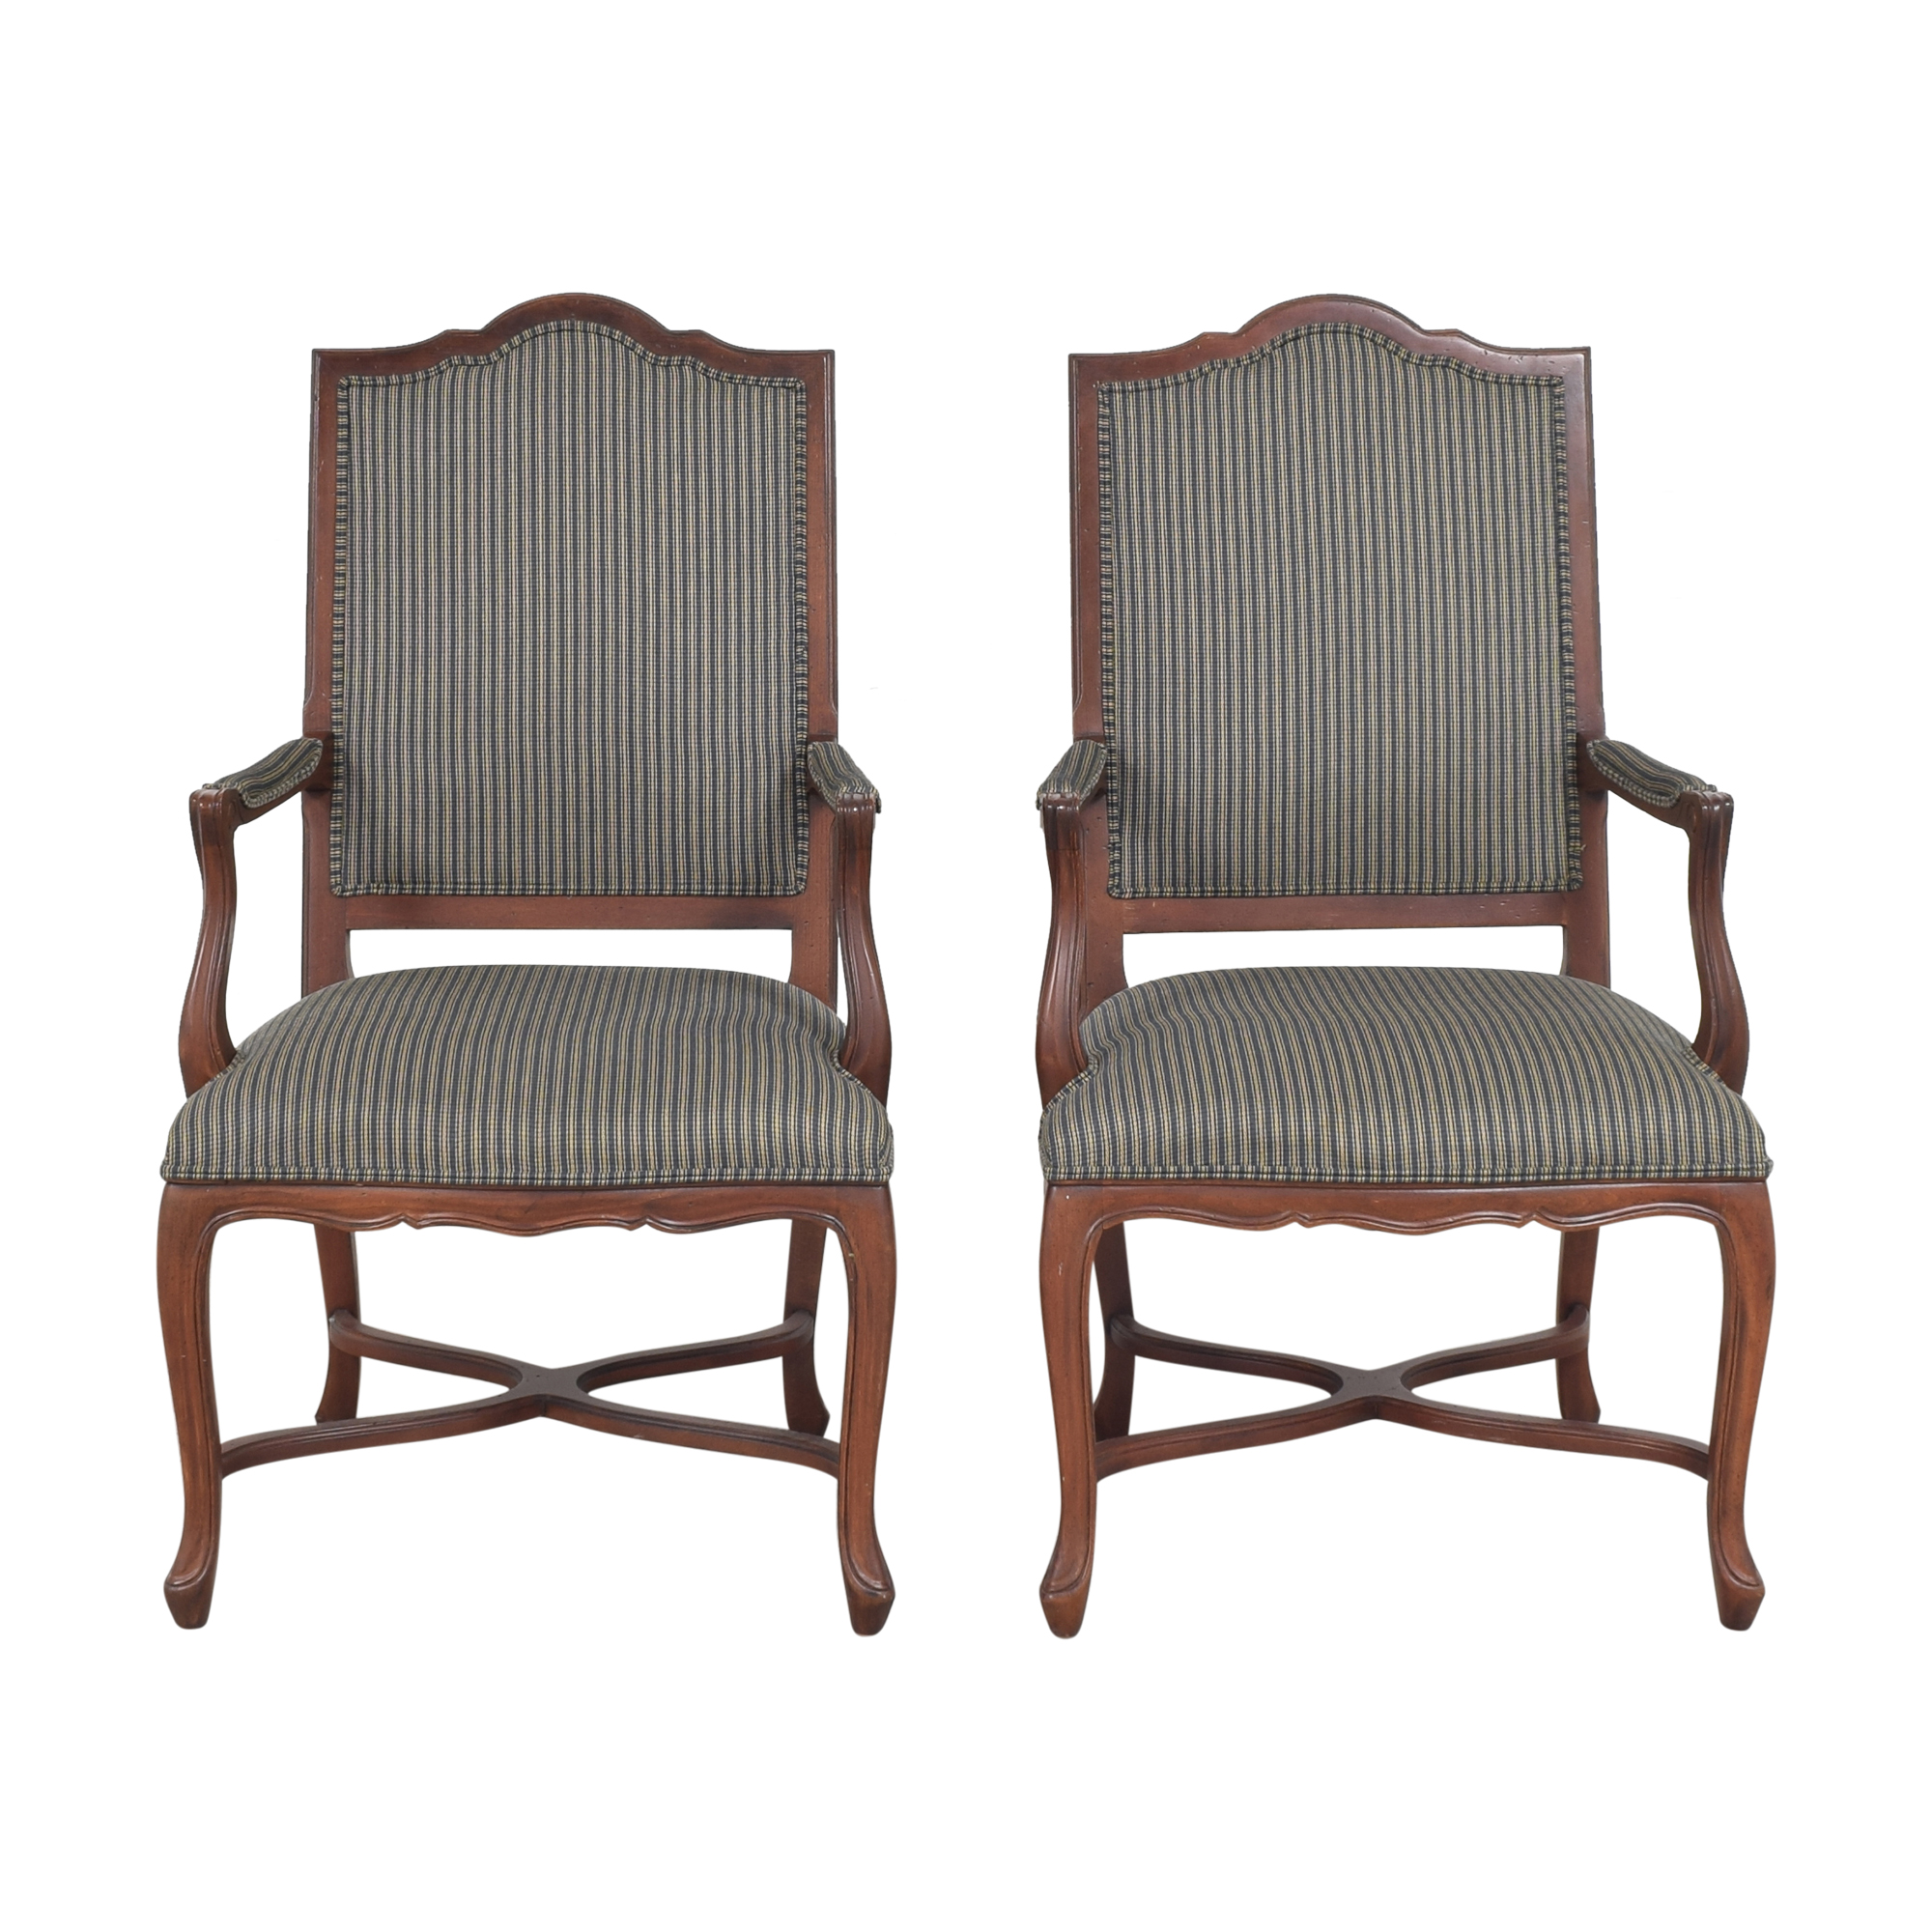 Ethan Allen Ethan Allen Dining Arm Chairs nj